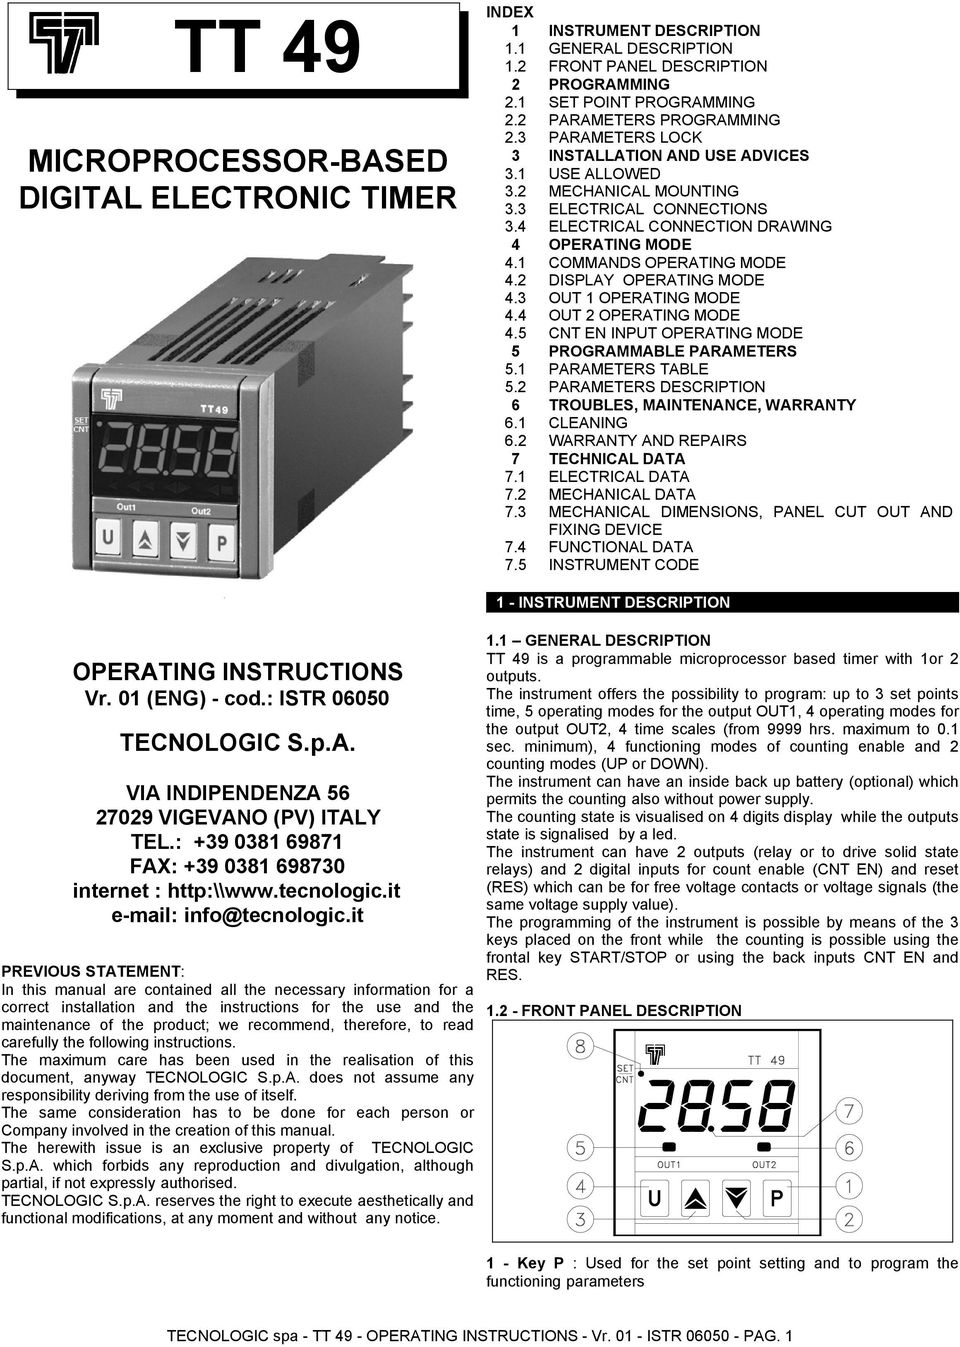 MOUNTING ELECTRICAL CONNECTIONS ELECTRICAL CONNECTION DRAWING OPERATING MODE COMMANDS OPERATING MODE DISPLAY OPERATING MODE OUT OPERATING MODE OUT 2 OPERATING MODE CNT EN INPUT OPERATING MODE